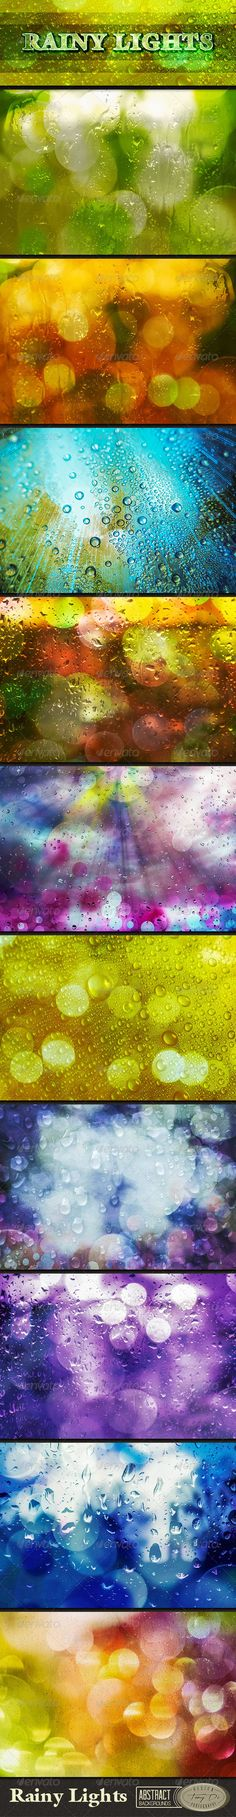 Rainy Lights Backgrounds The package contains 10 rainy lights backgrounds with water drops, bokeh, lights and light blur in web &